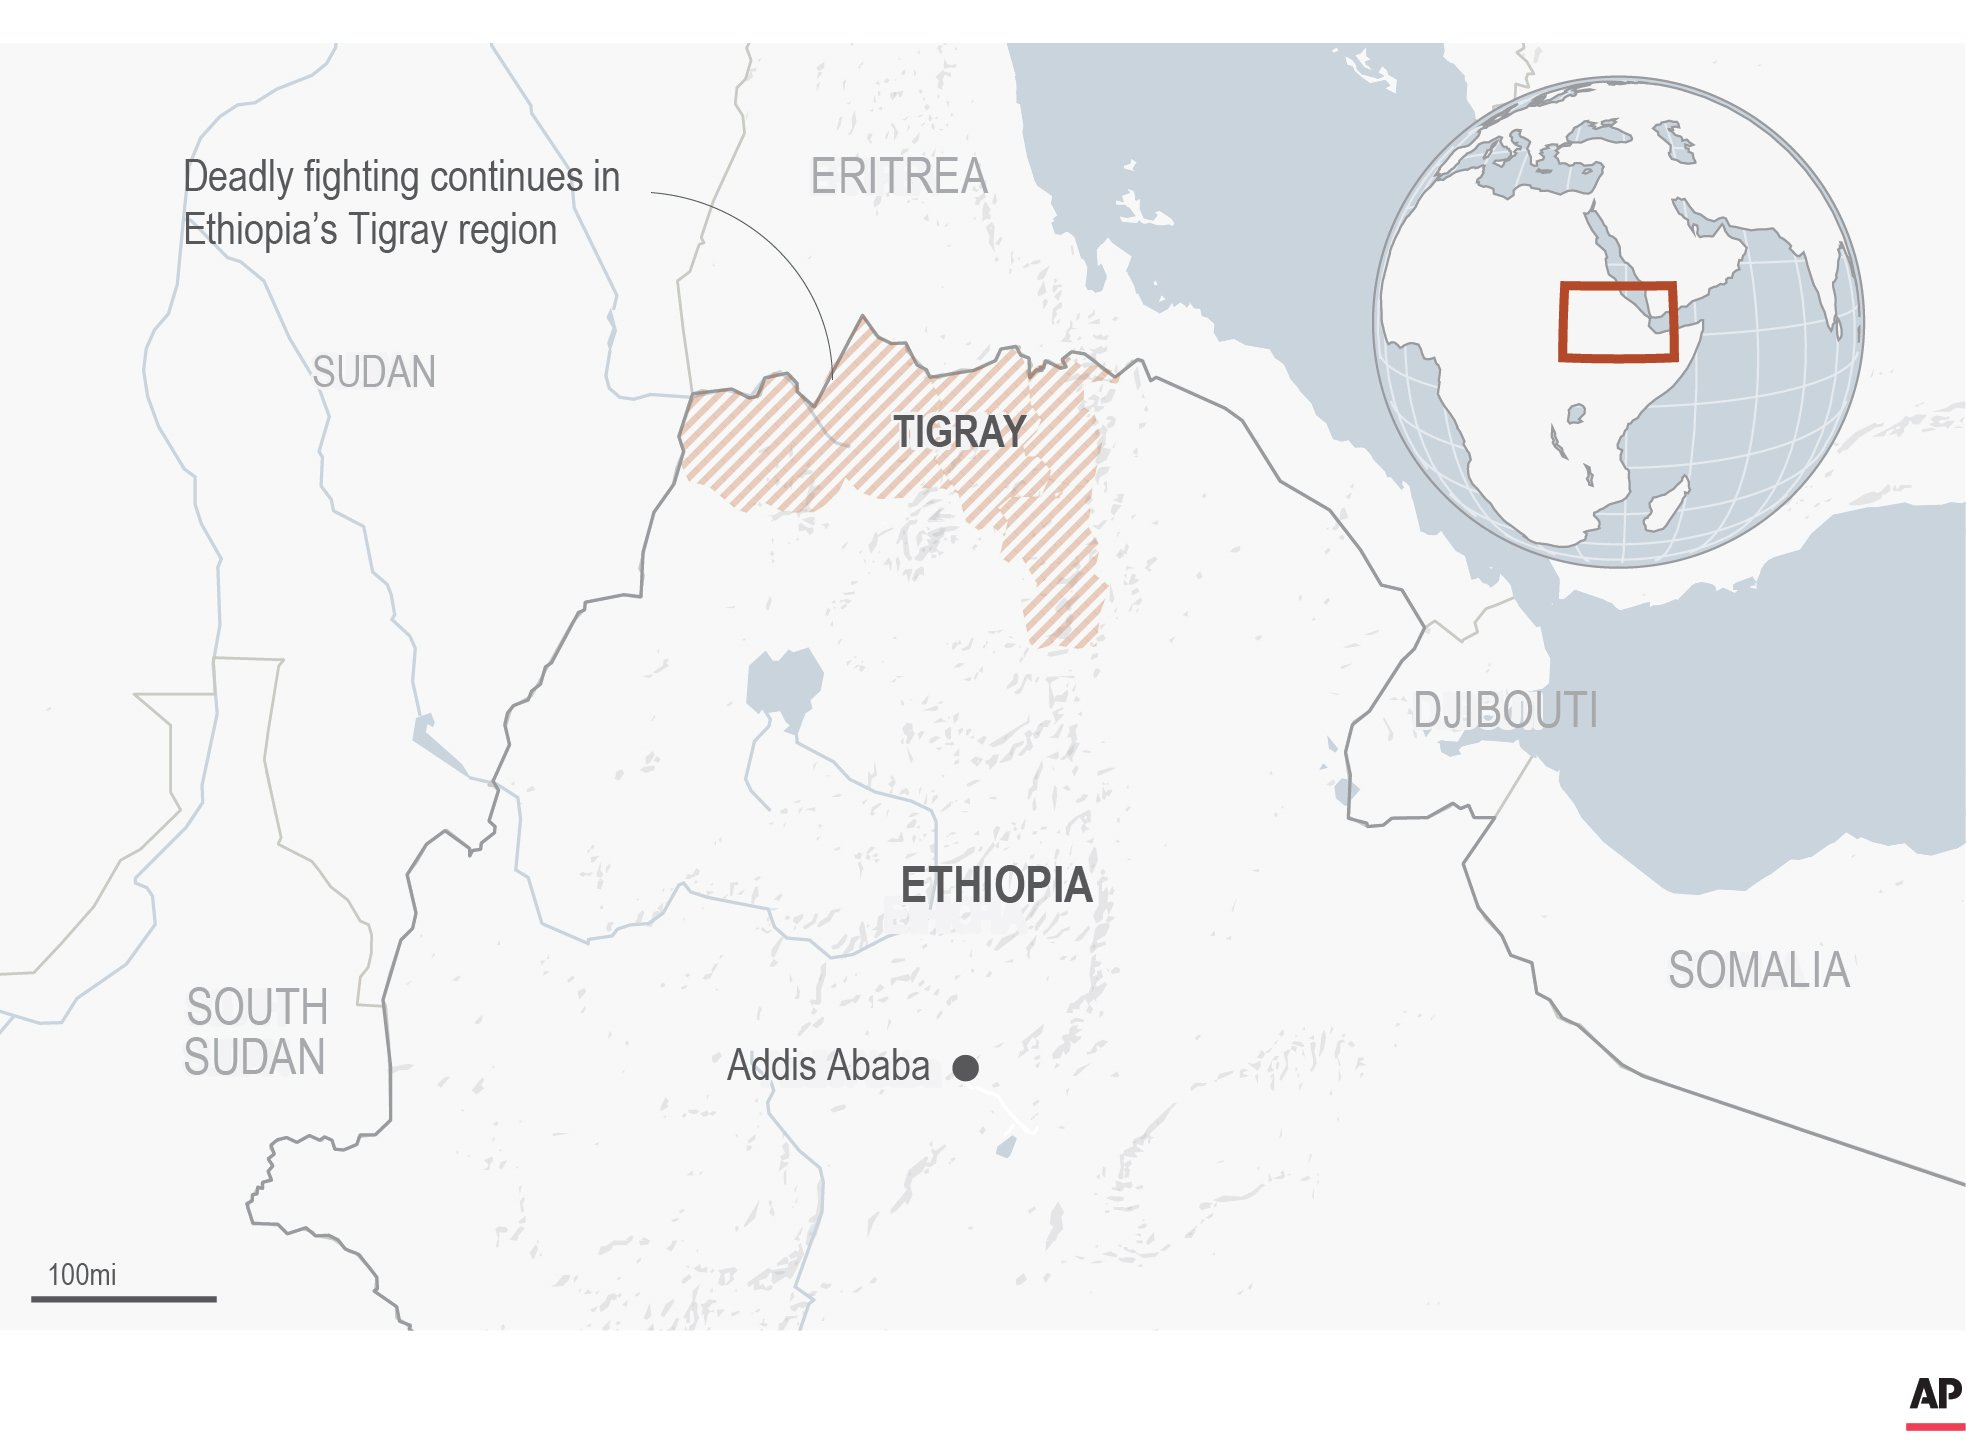 First witness account emerges of Ethiopians fleeing conflict